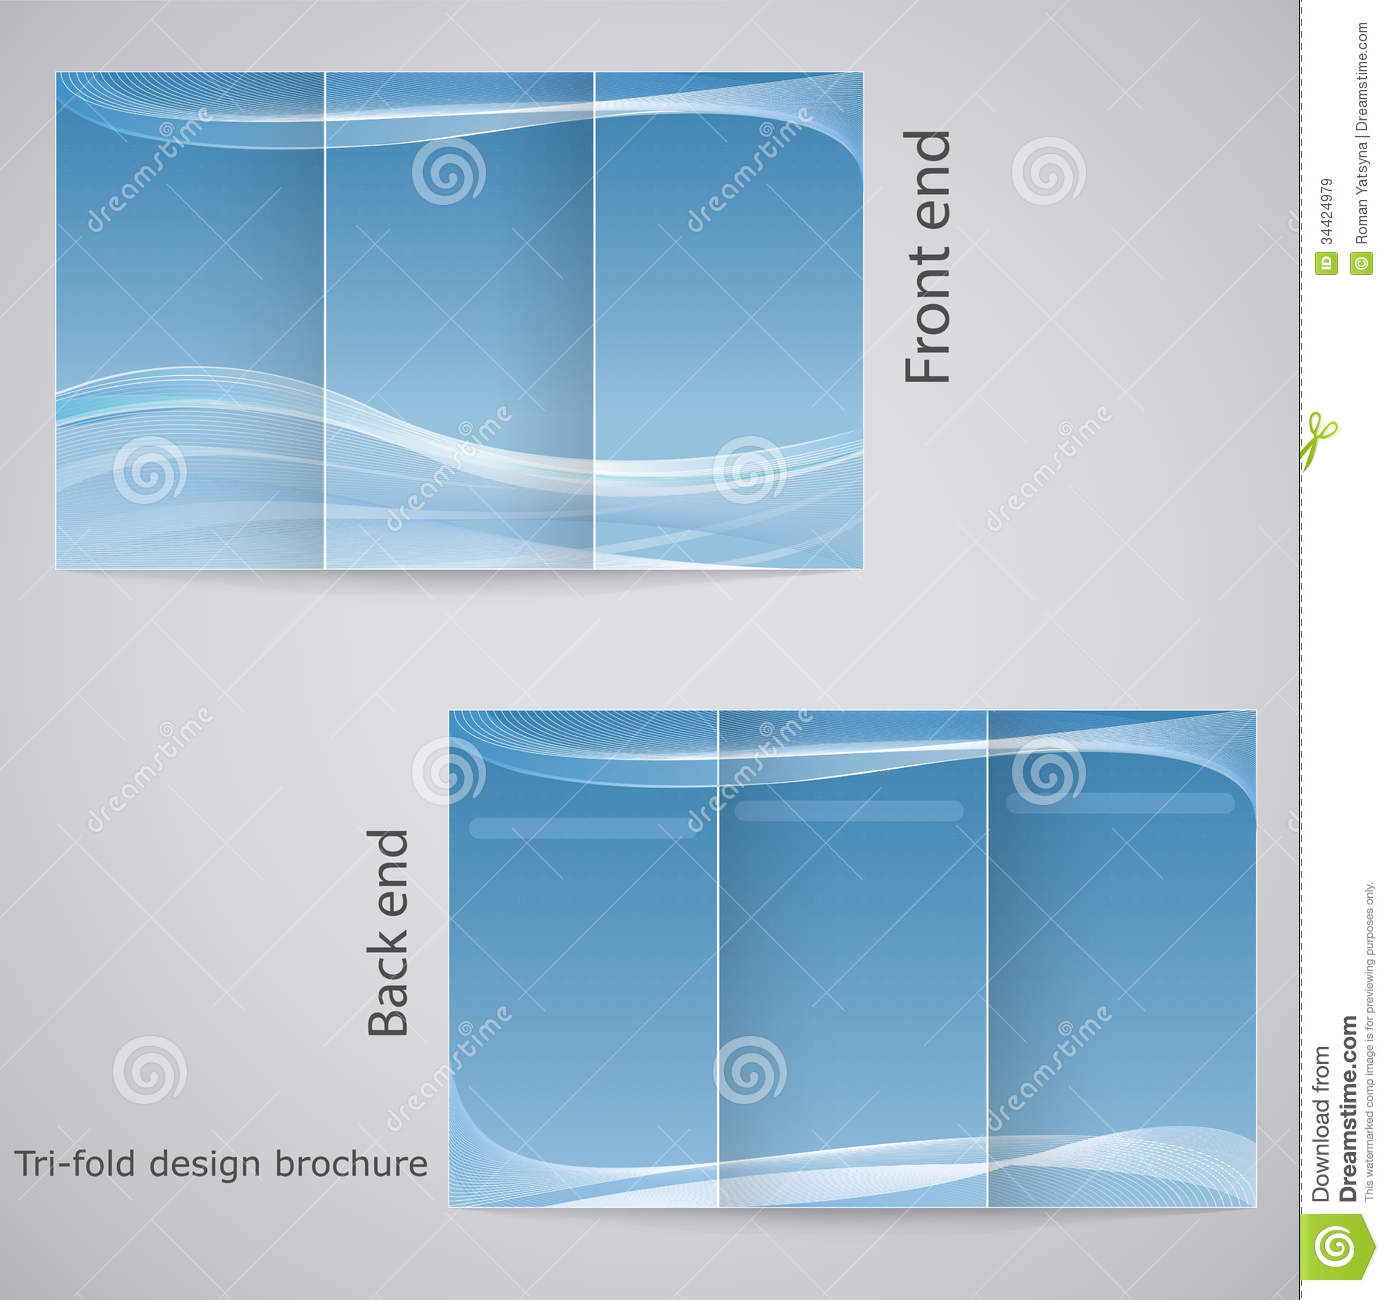 17 tri fold brochure design templates images tri fold for Word tri fold brochure template